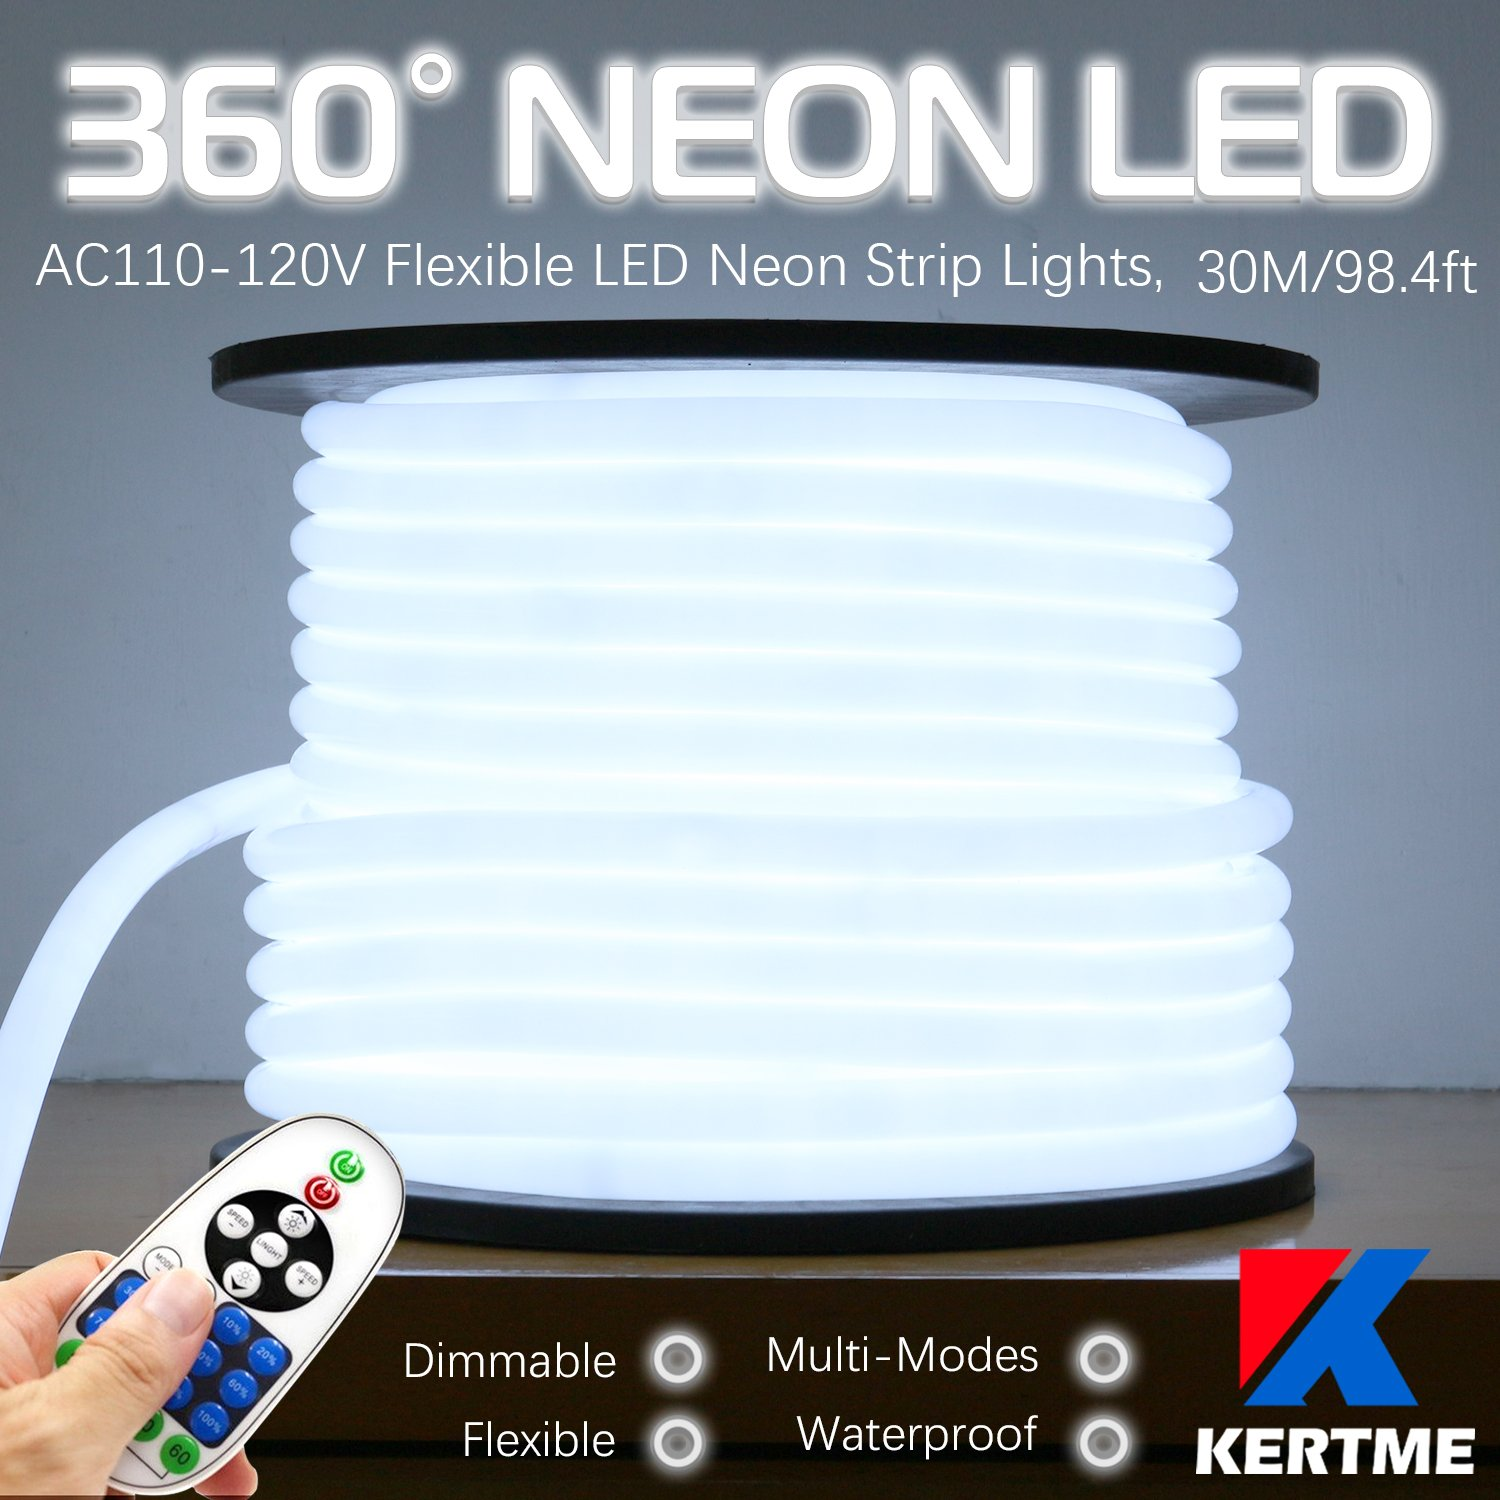 KERTME 360° Neon Led Type AC 110-120V 360 Degree NEON LED Light Strip, Flexible/Waterproof/Dimmable/Multi-Modes LED Rope Light + Remote for Home/Garden/Building Decor (98.4ft/30m, White 6000K)